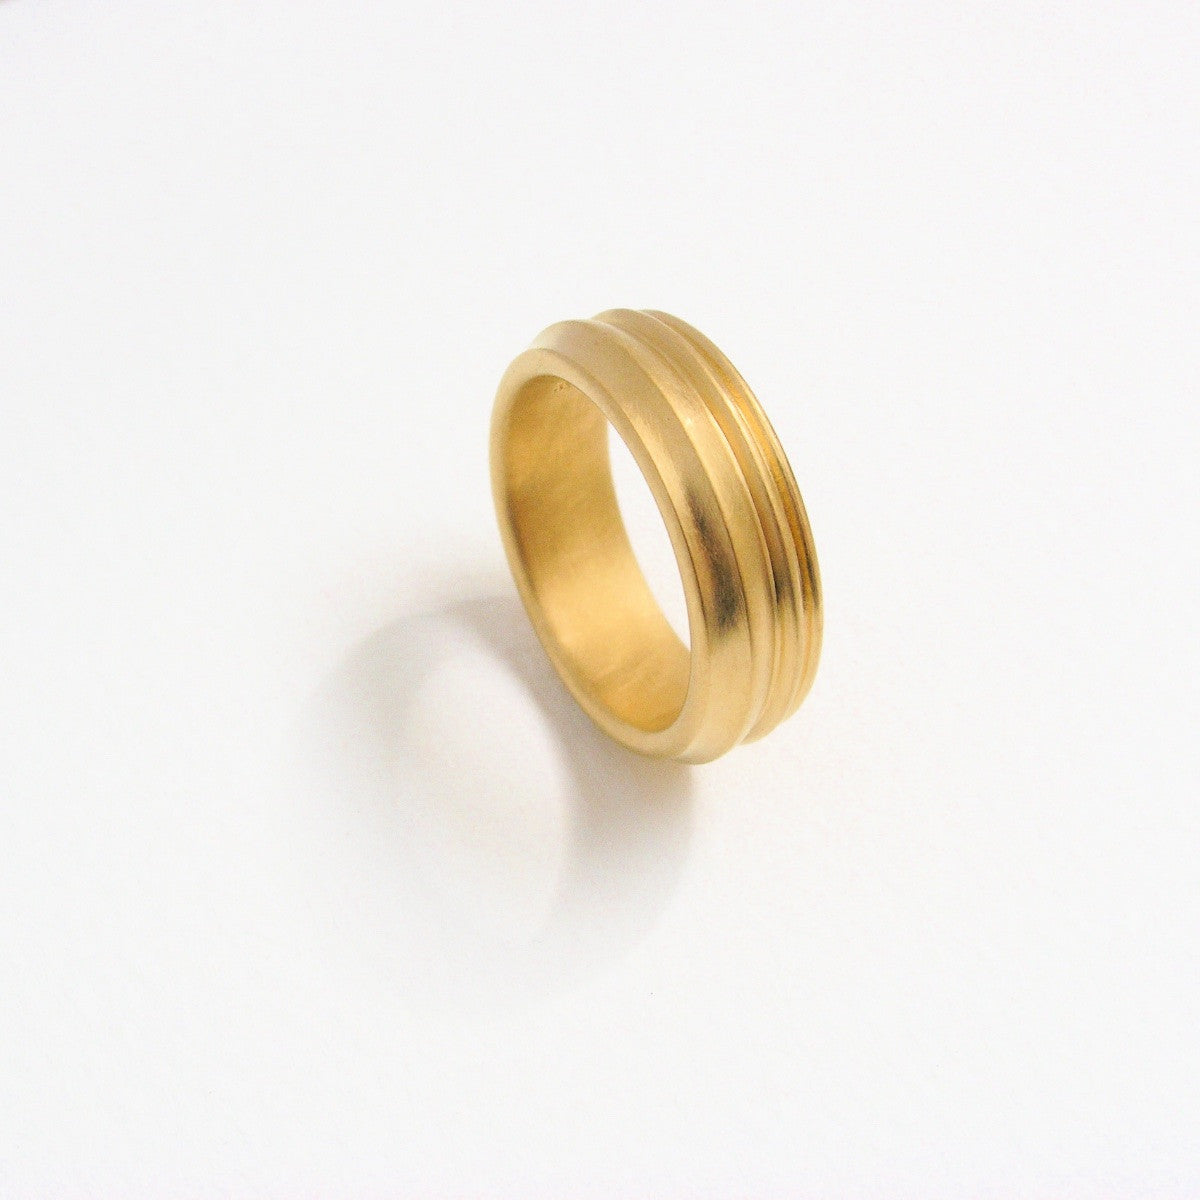 'Gericht' Fairtrade Gold Ring